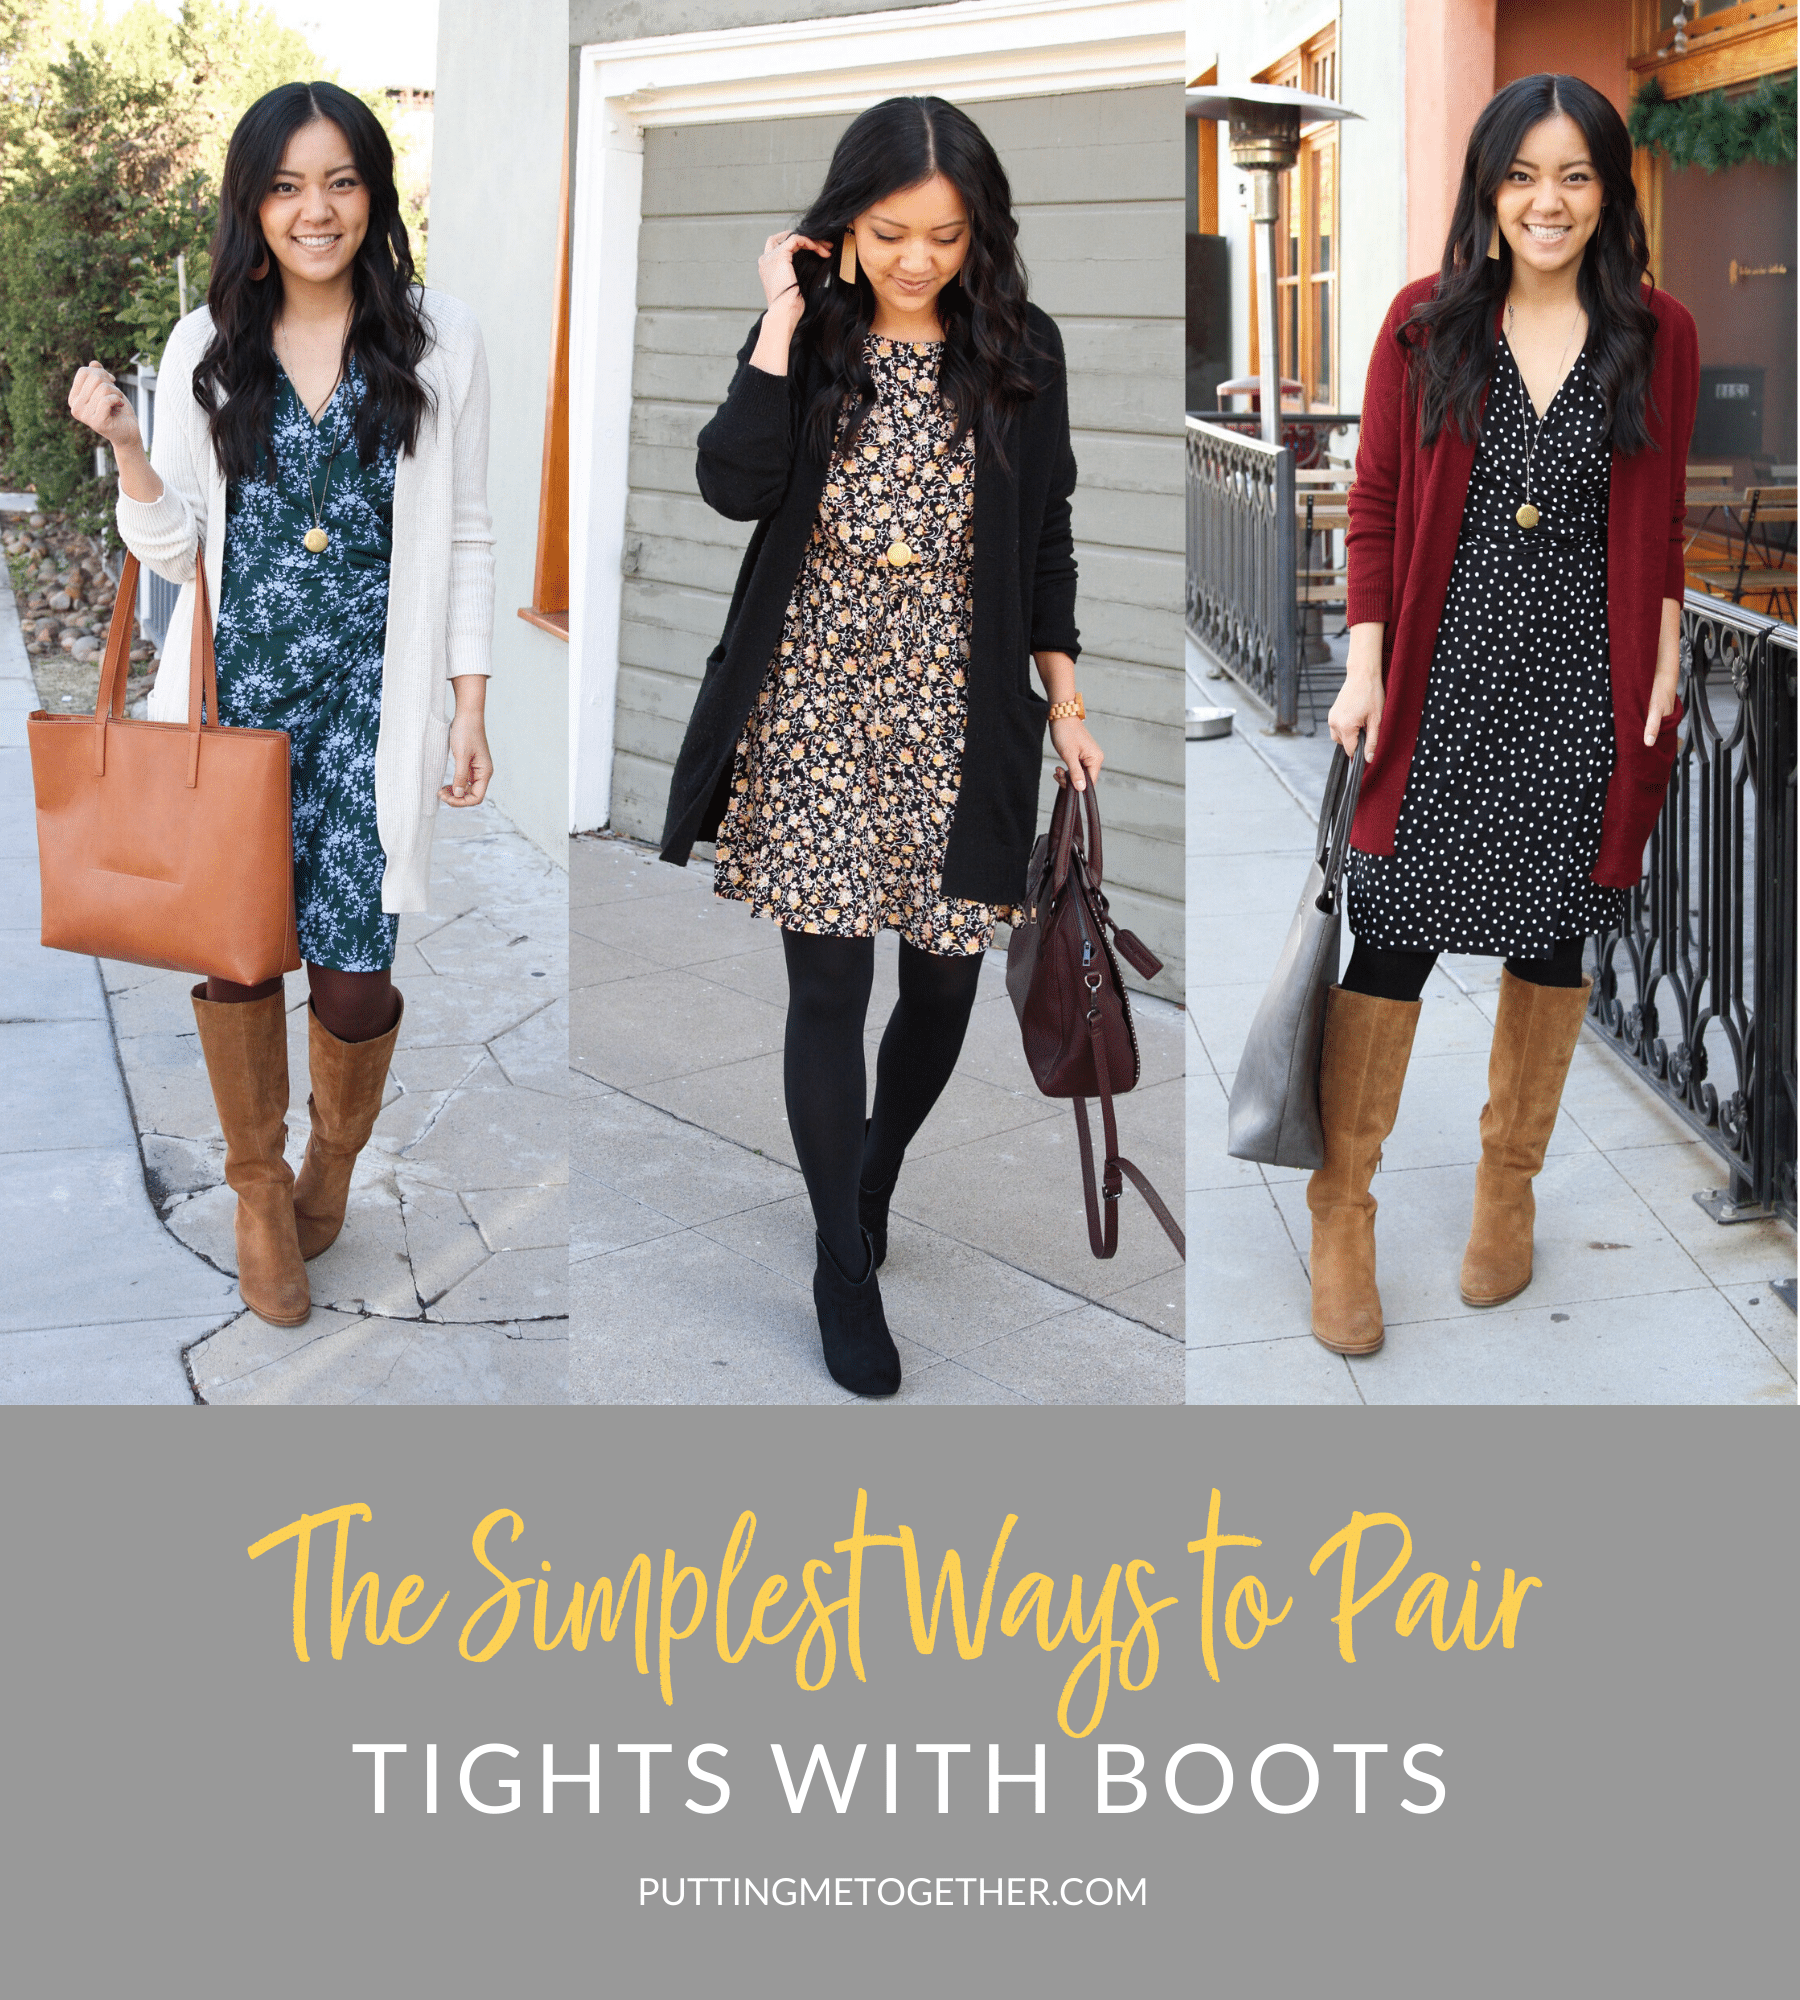 Simplest Ways to Pair Tights with Boots